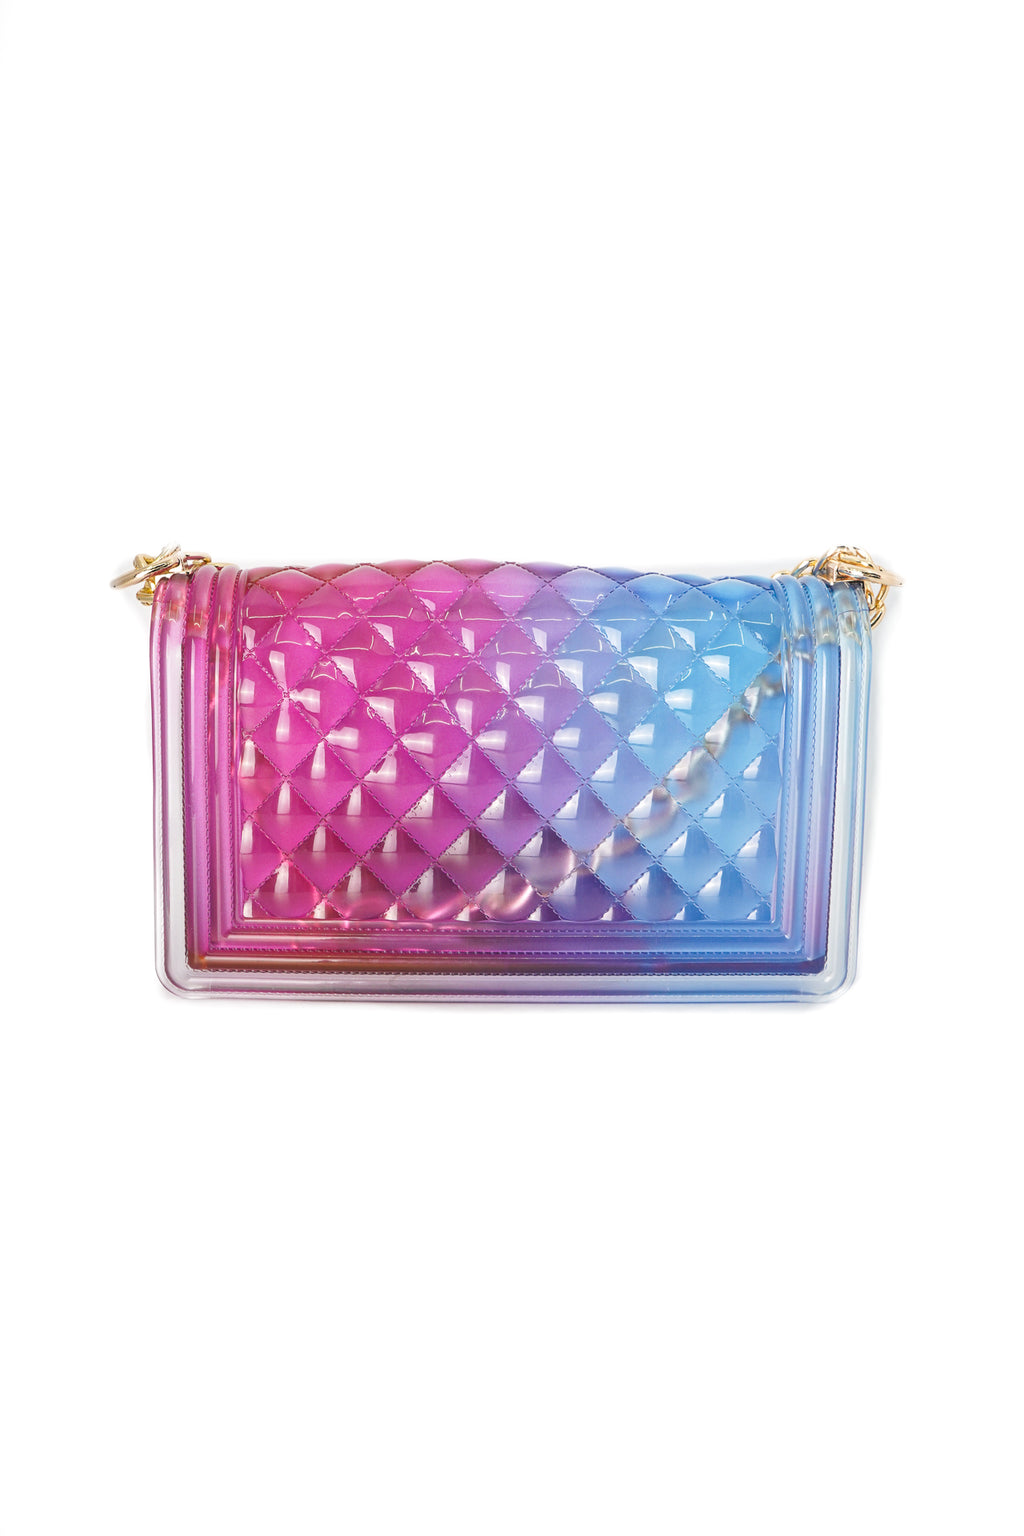 Two Tone Blue and Pink Clear Color Quilted Jelly Crossbody Shoulder Bag with Metal Chain Strap